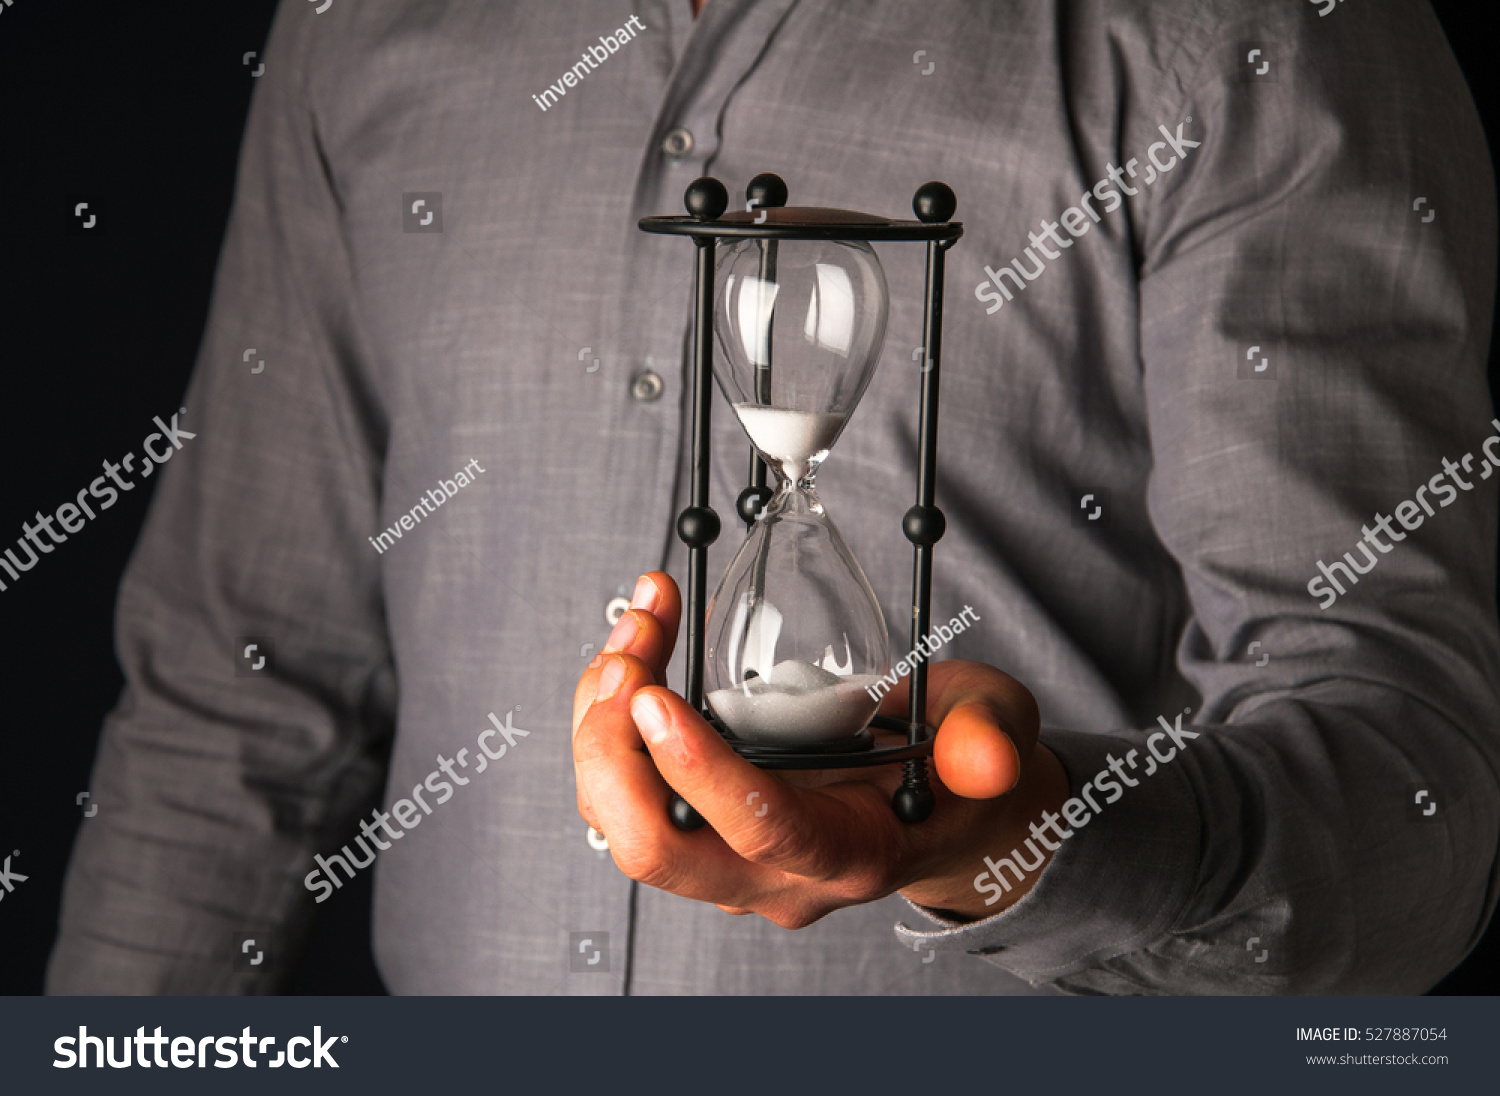 Technology Management Image: Businessman Holding Hourglass In His Hand Stock Photo